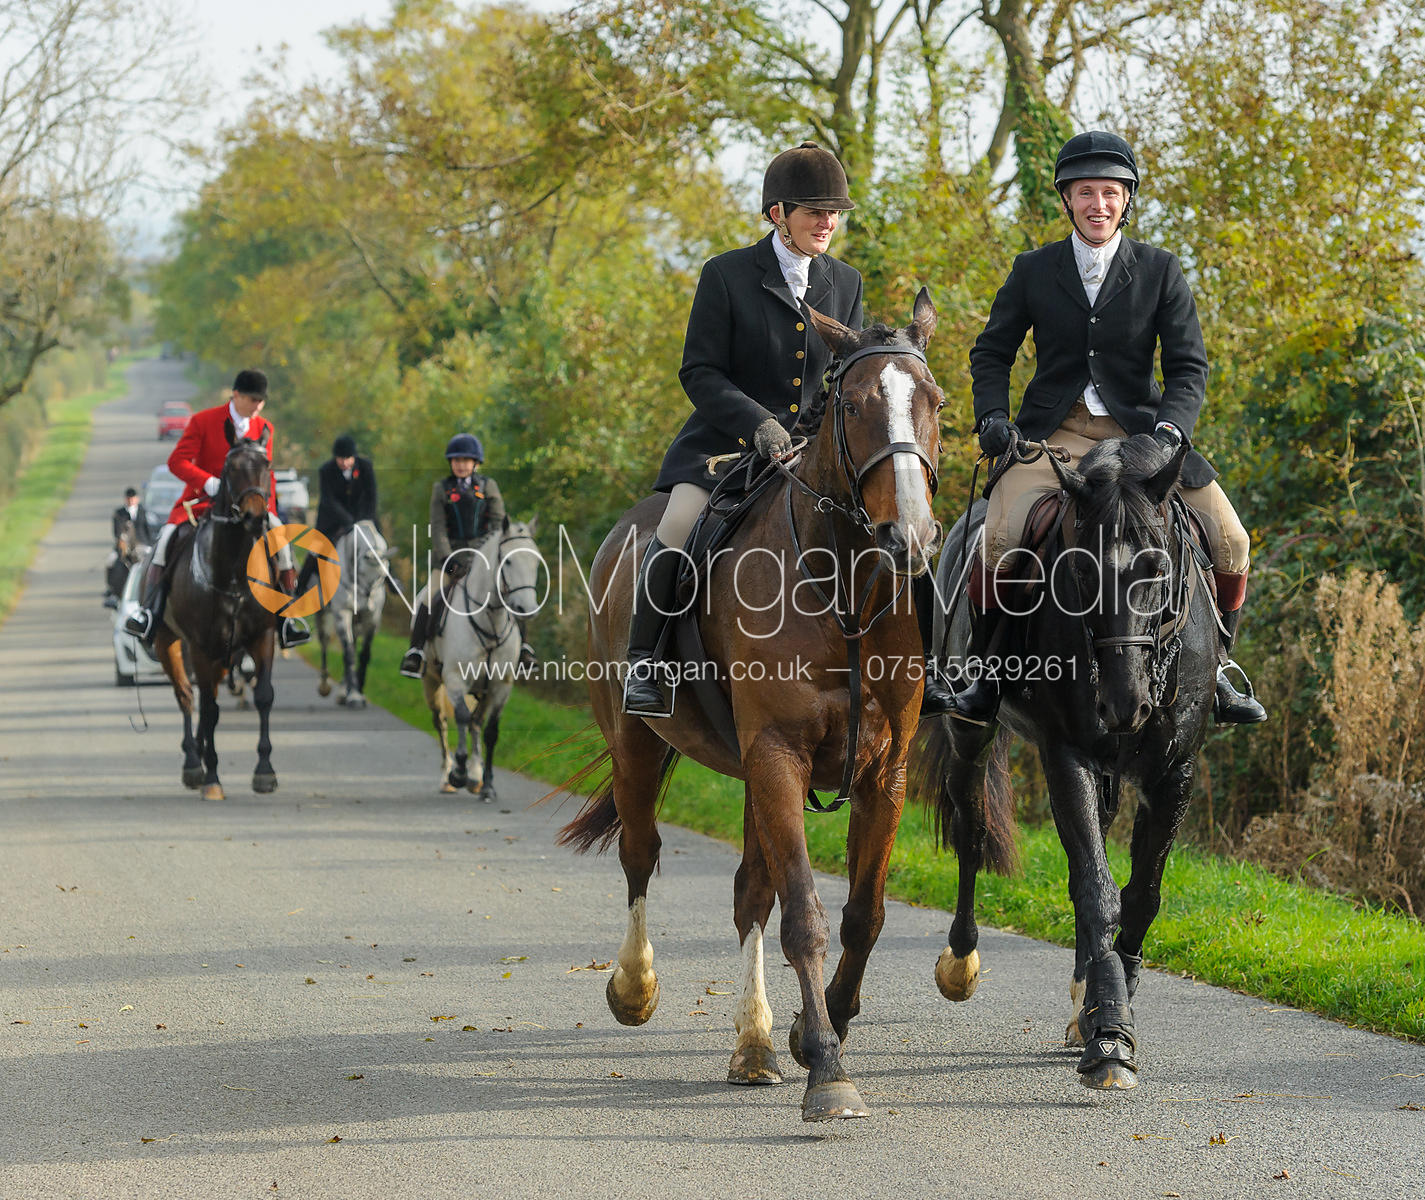 on Cold Overton Road - The Cottesmore at Langham.